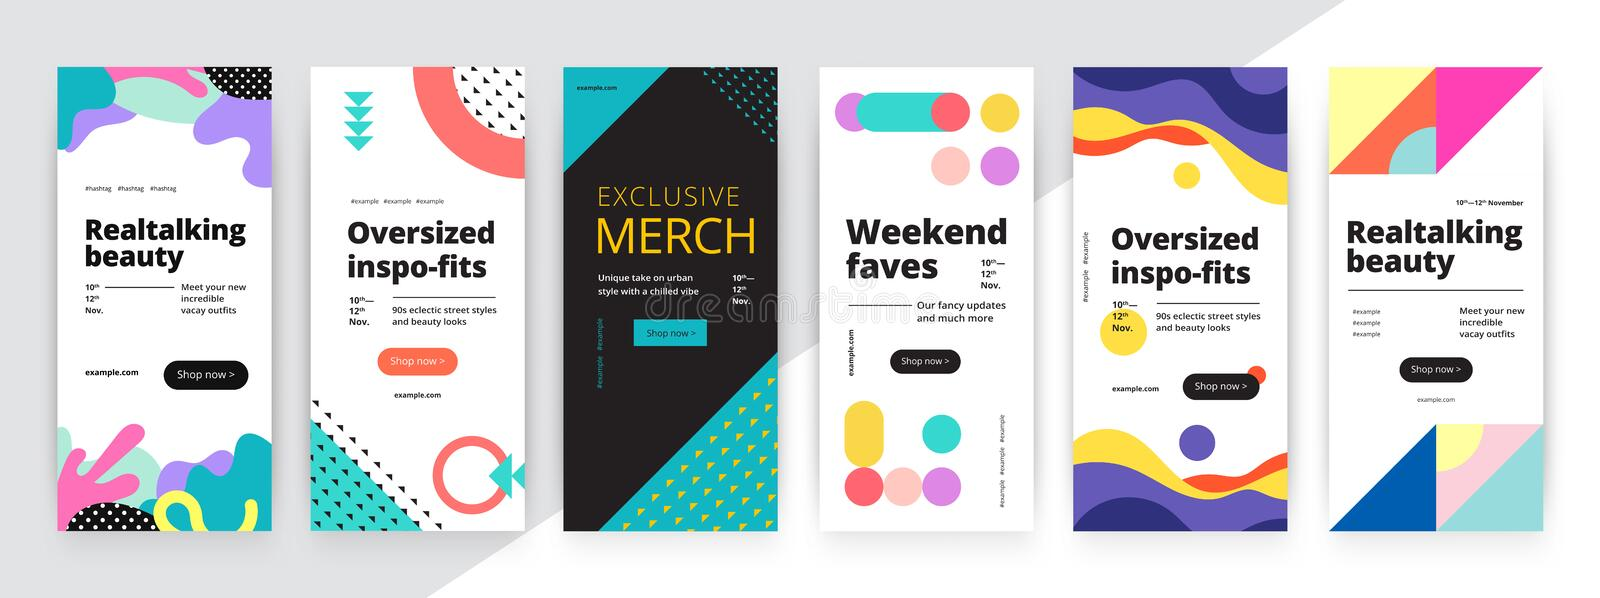 Modern promotion rectangular web banner for social media mobile apps. Elegant sale and discount promo backgrounds with abstract stock photography